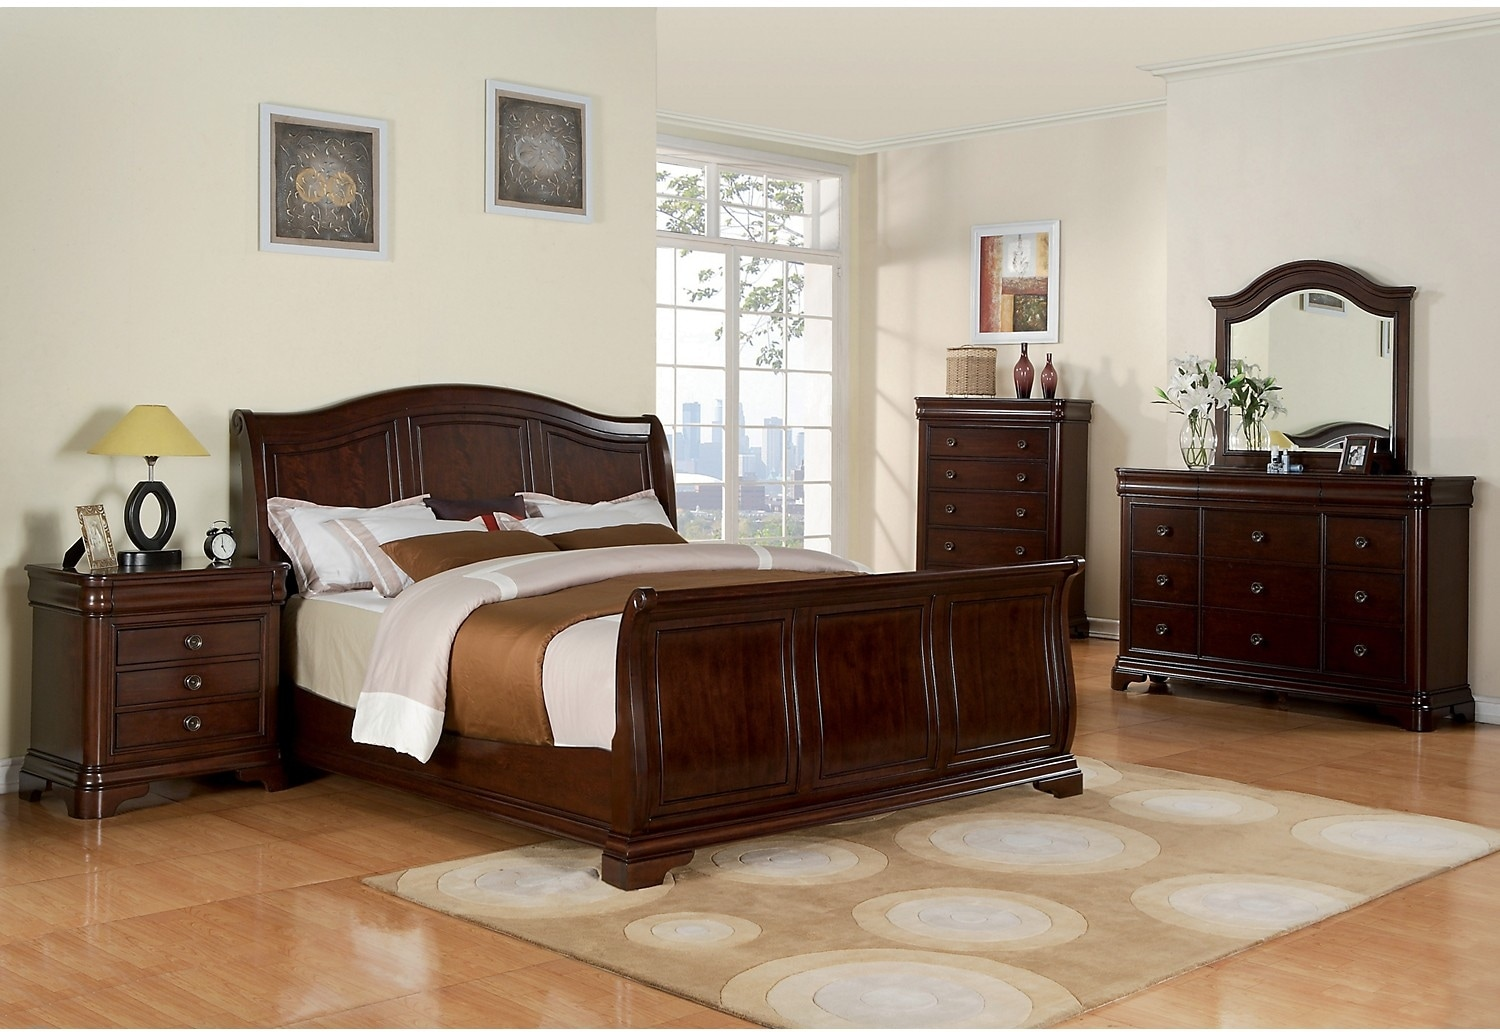 Bedroom Furniture - Cameron 6-Piece King Bedroom Set